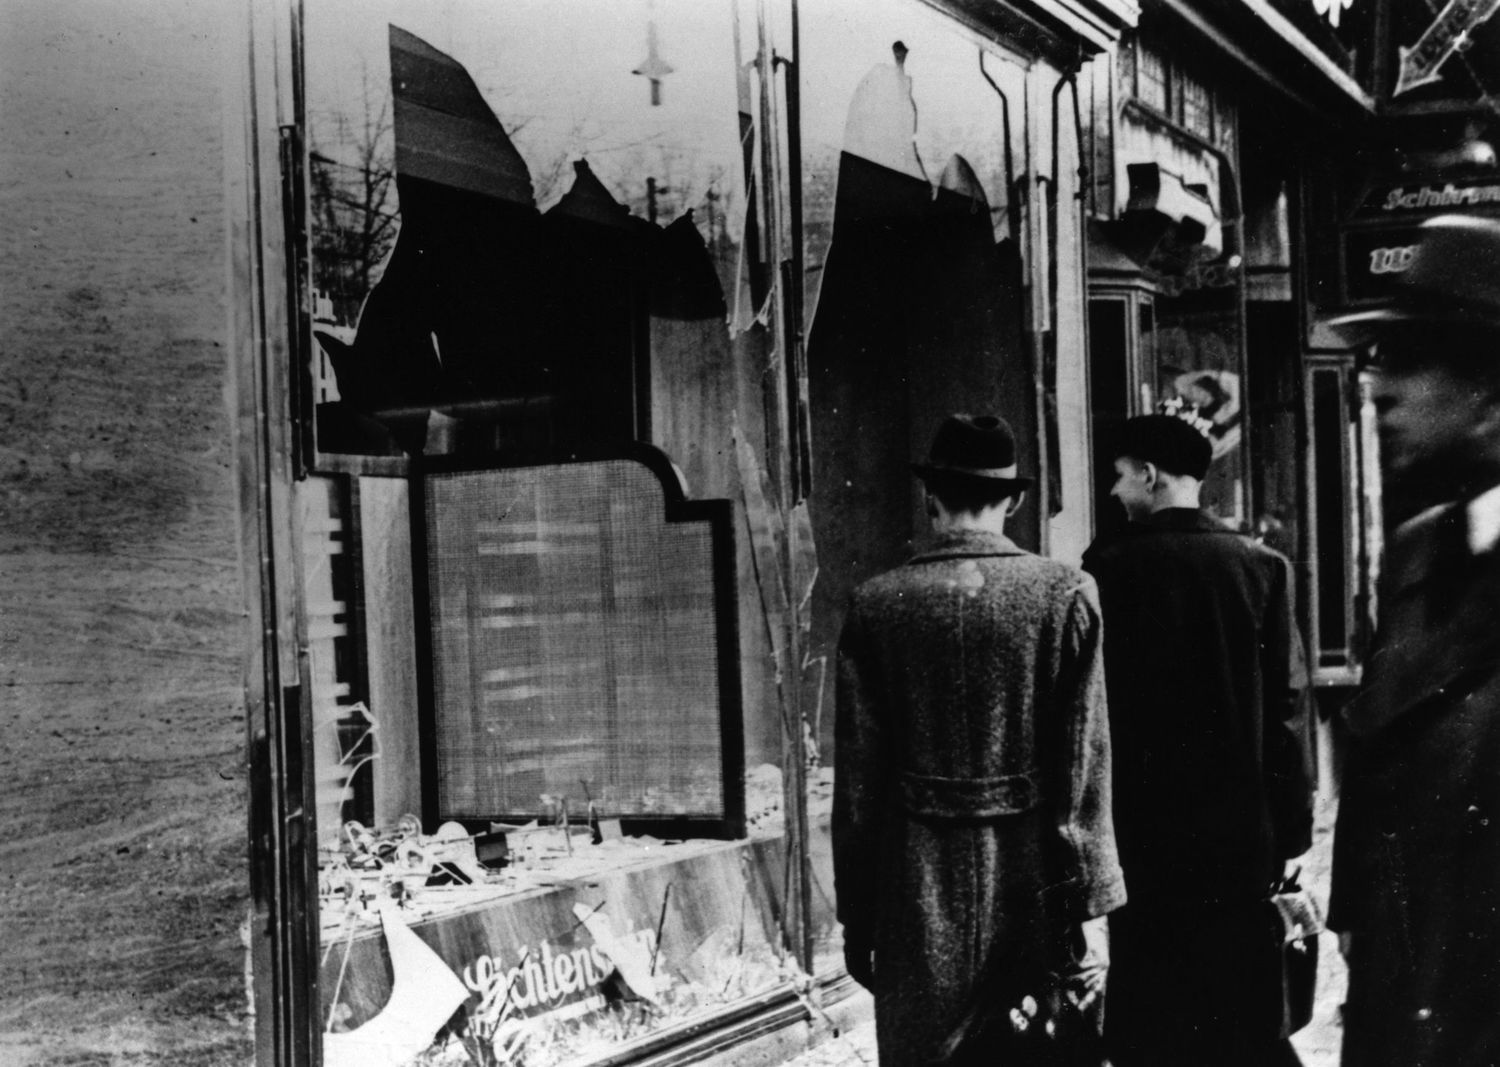 A Jewish store in Berlin in the aftermath of Kristallnacht